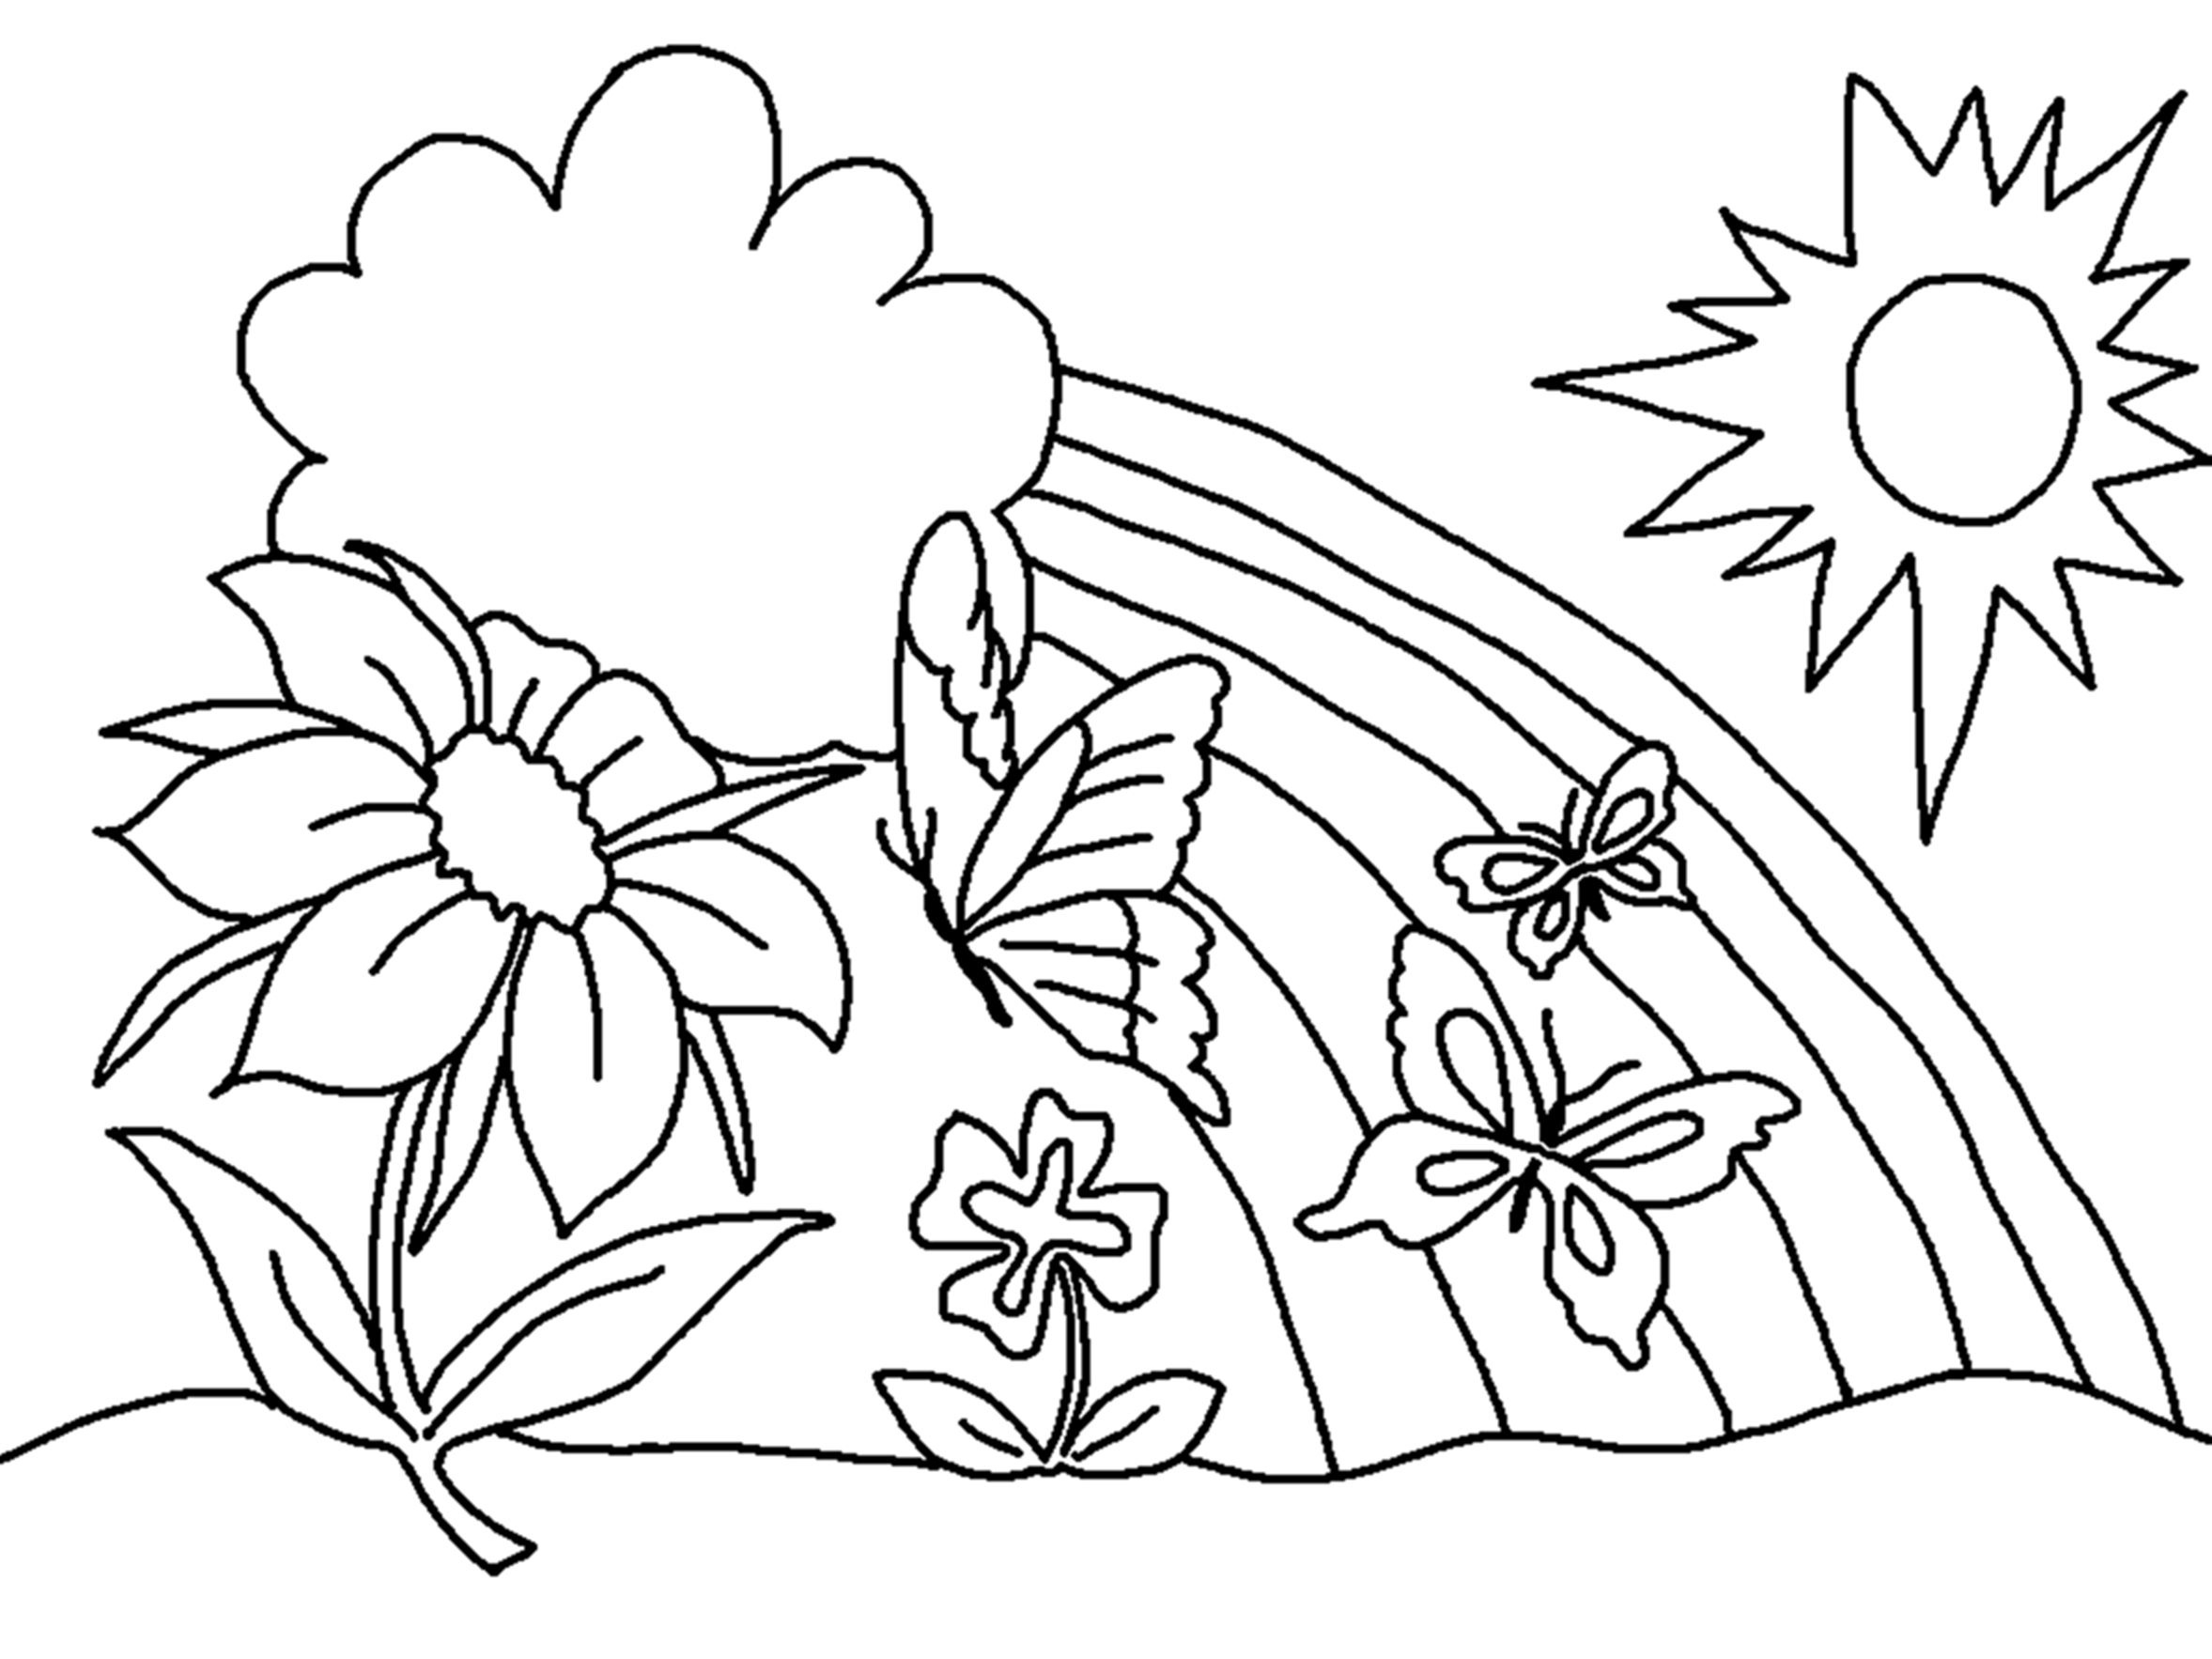 Free Printable Flower Coloring Pages For Kids Best   Coloring_Pages - Free Printable Flower Coloring Pages For Adults